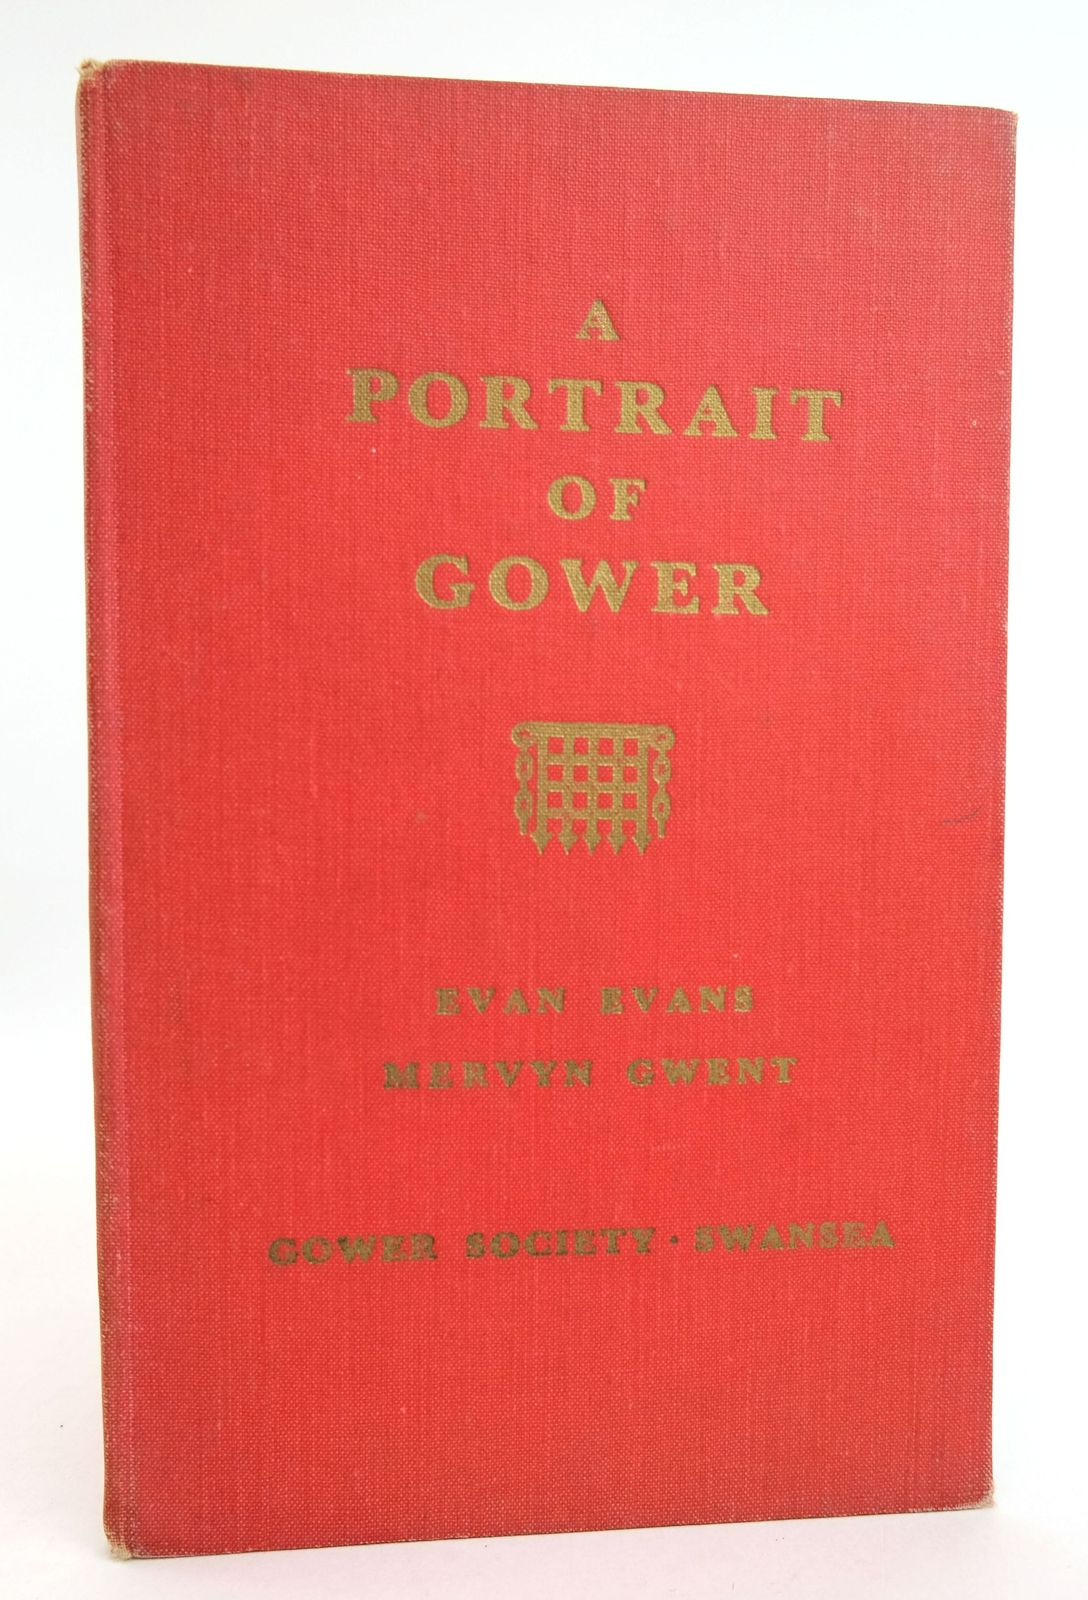 Photo of A PORTRAIT OF GOWER written by Evans, Evan Gwent, Mervyn published by The Gower Society (STOCK CODE: 1819065)  for sale by Stella & Rose's Books